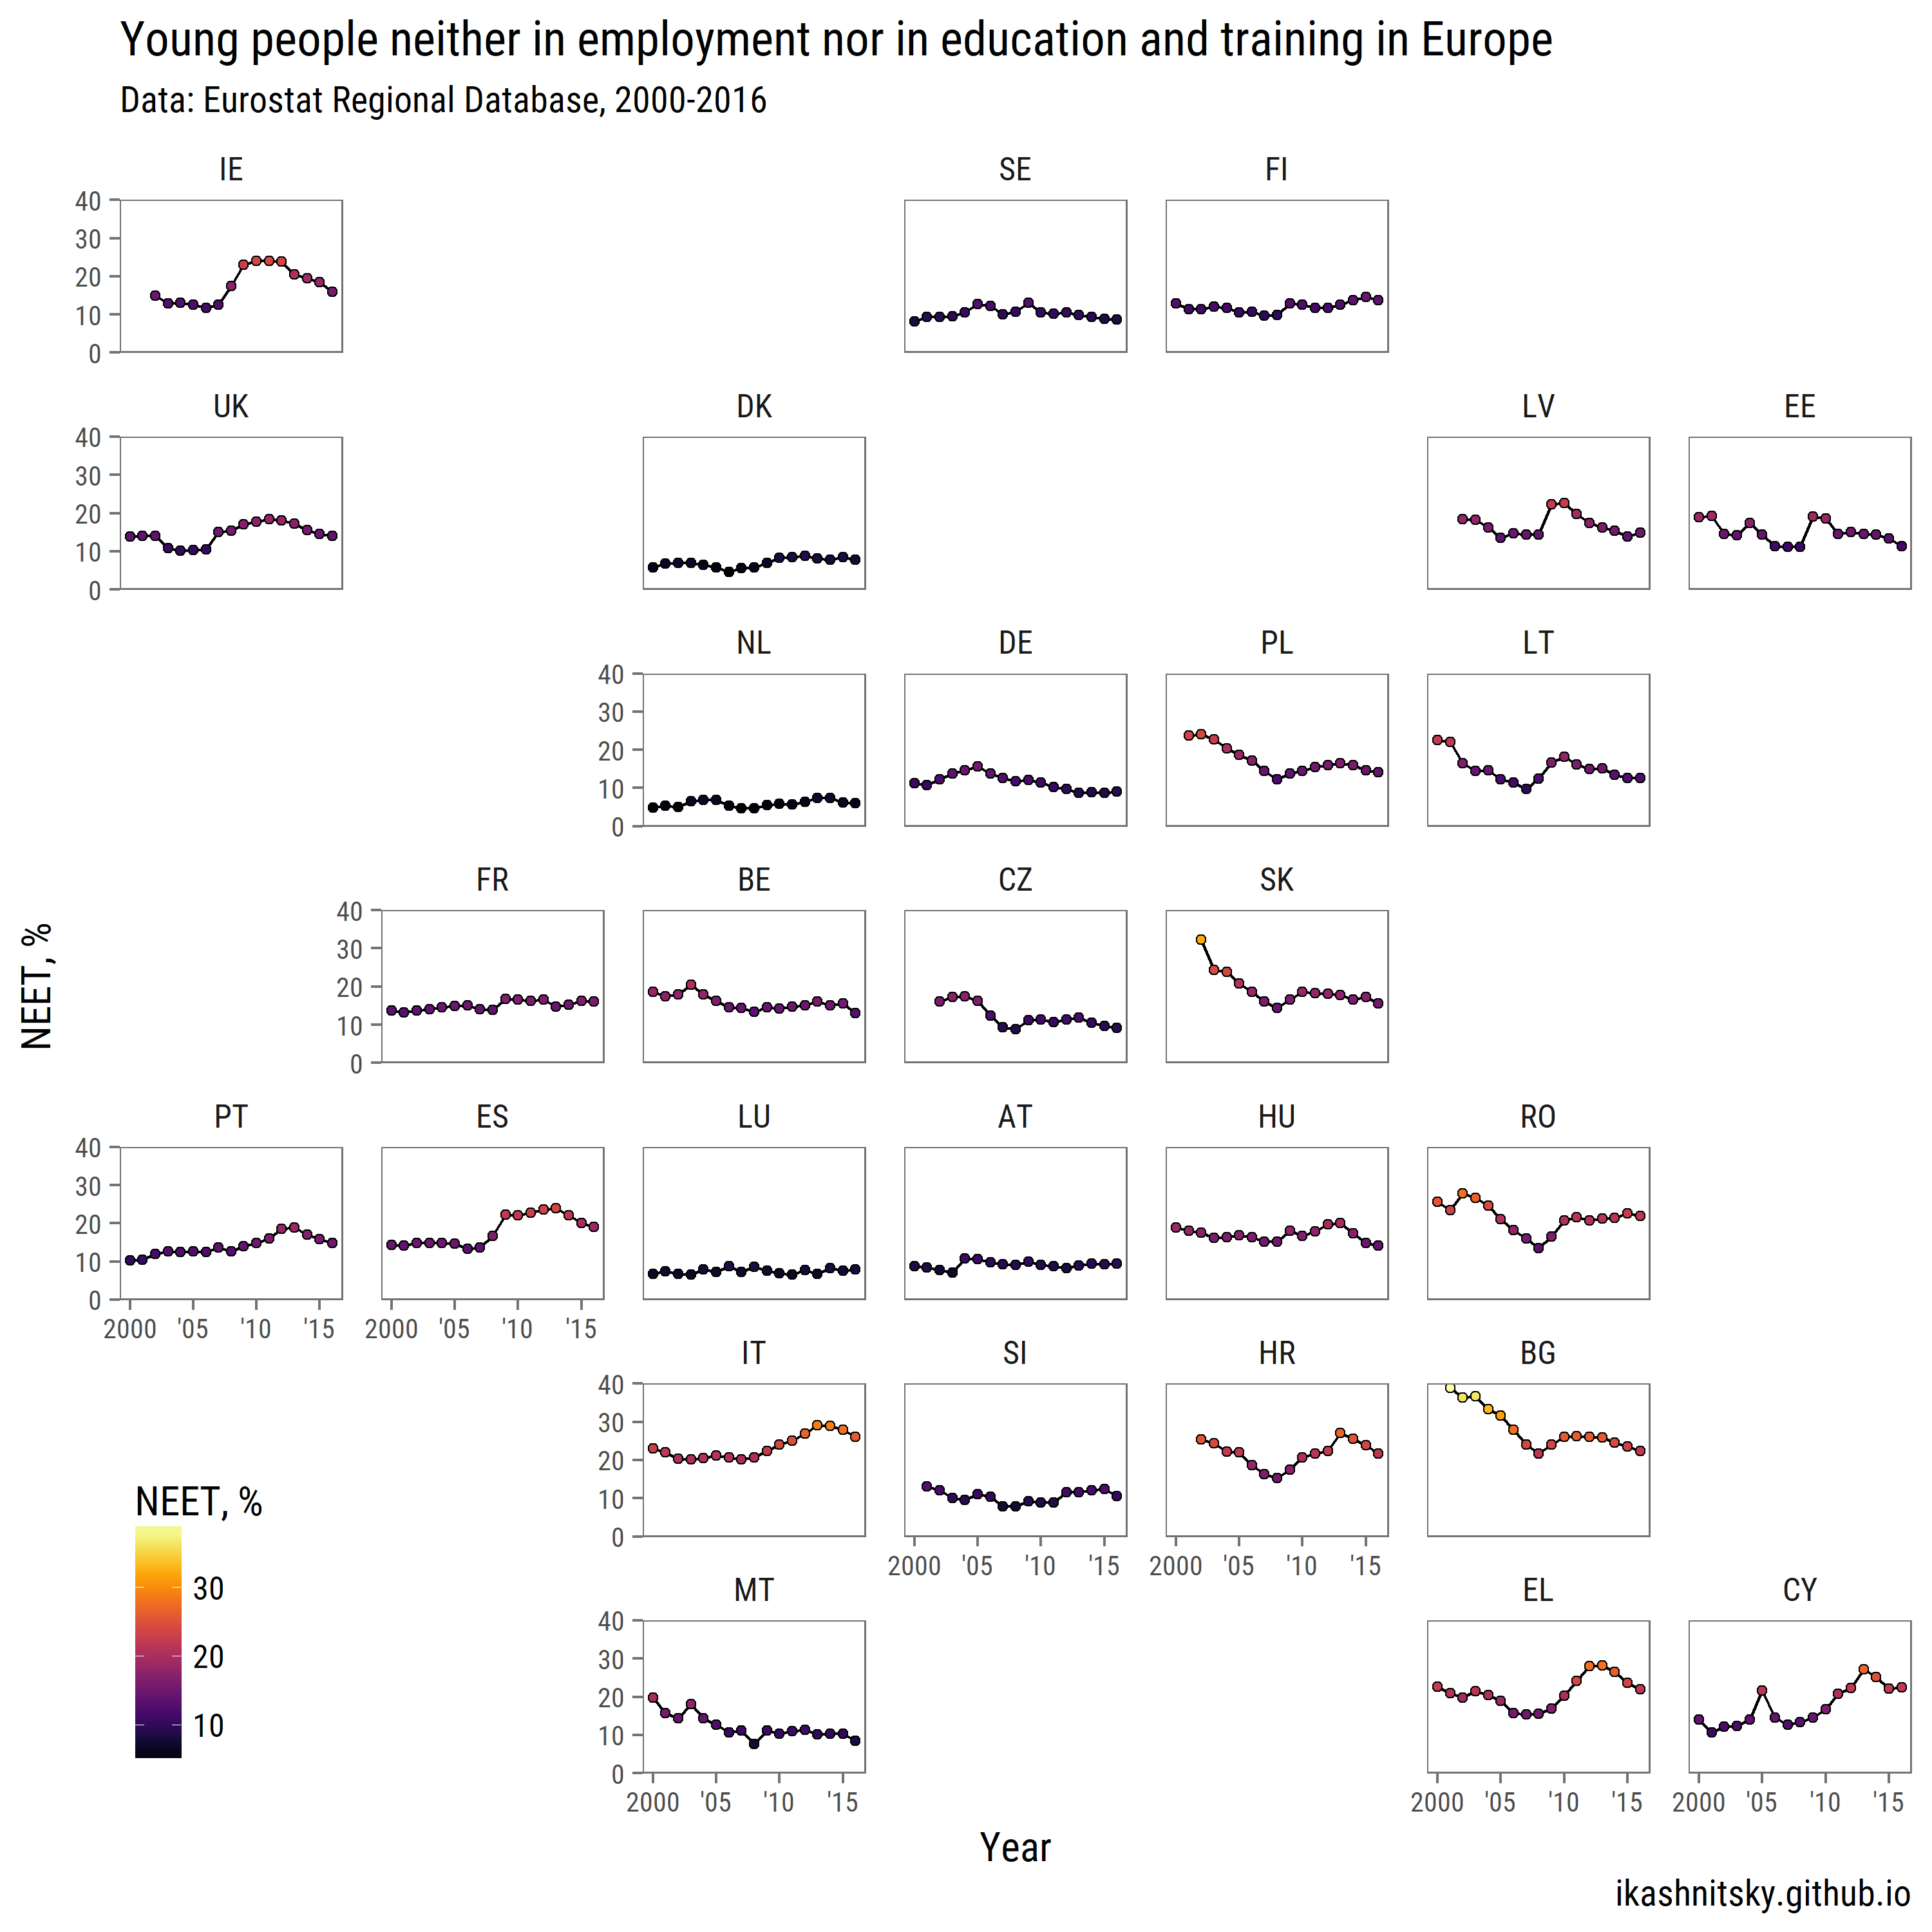 Young people neither in employment nor in education and training in Europe, 2000-2016